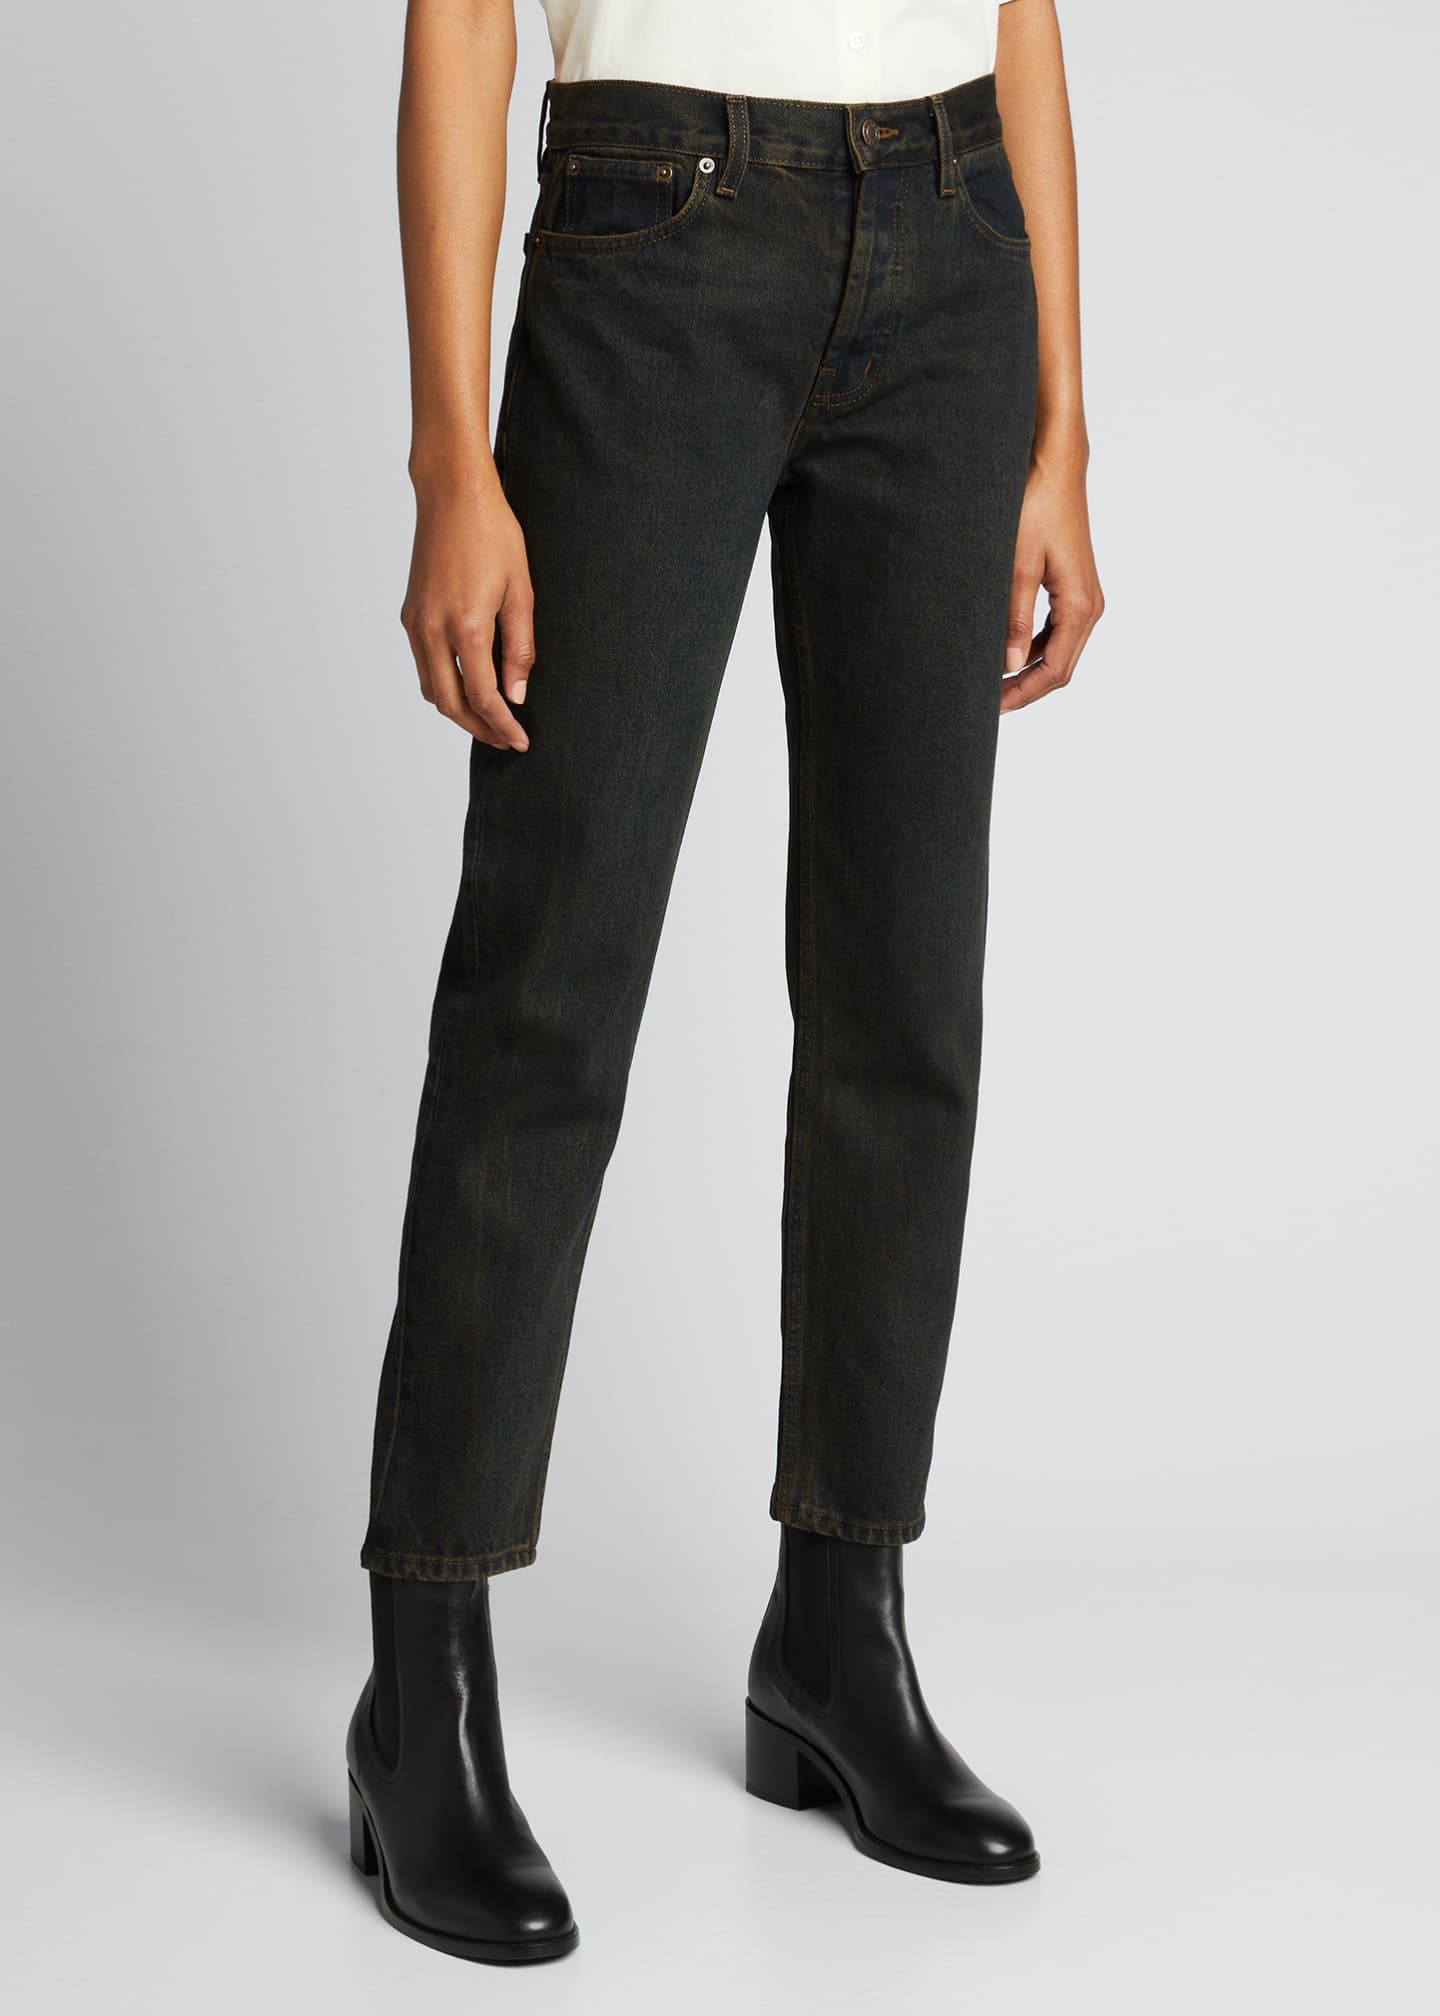 Image 3 of 5: The Rae Original Cropped Jeans